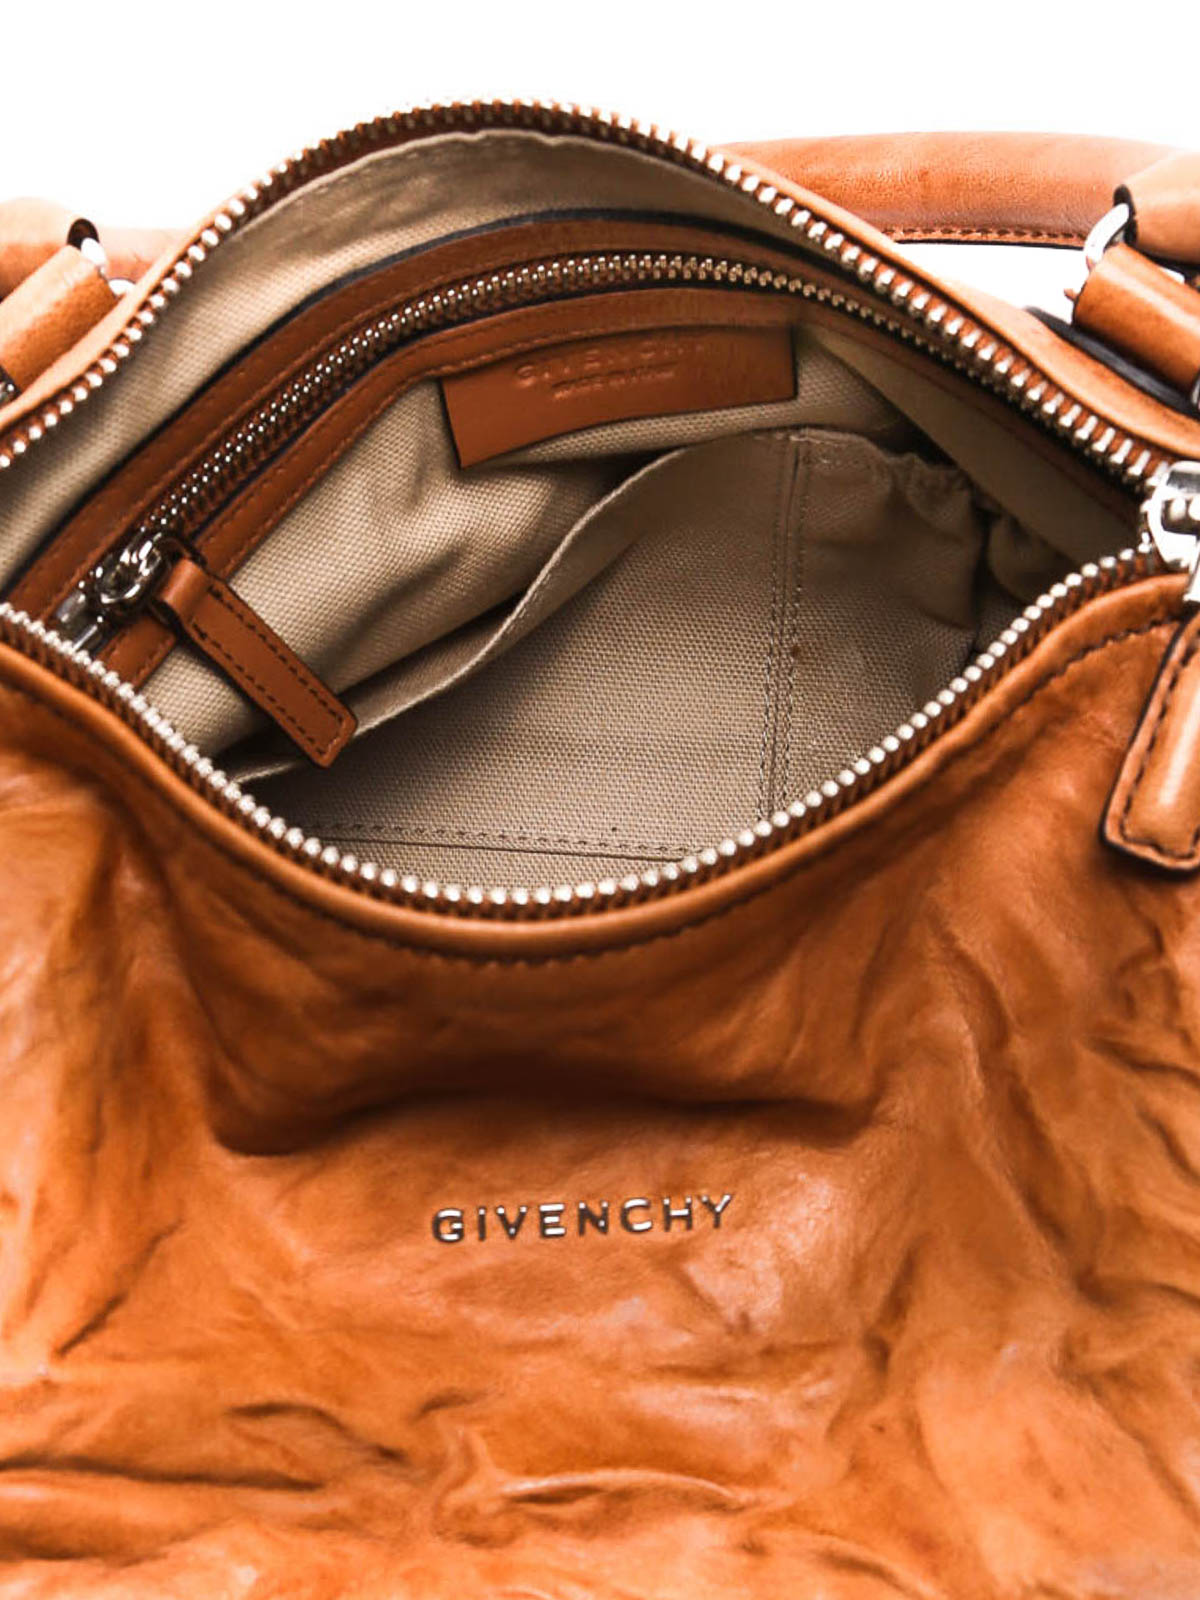 380a7bcd3755 Givenchy - Pandora small creased leather bag - shoulder bags ...